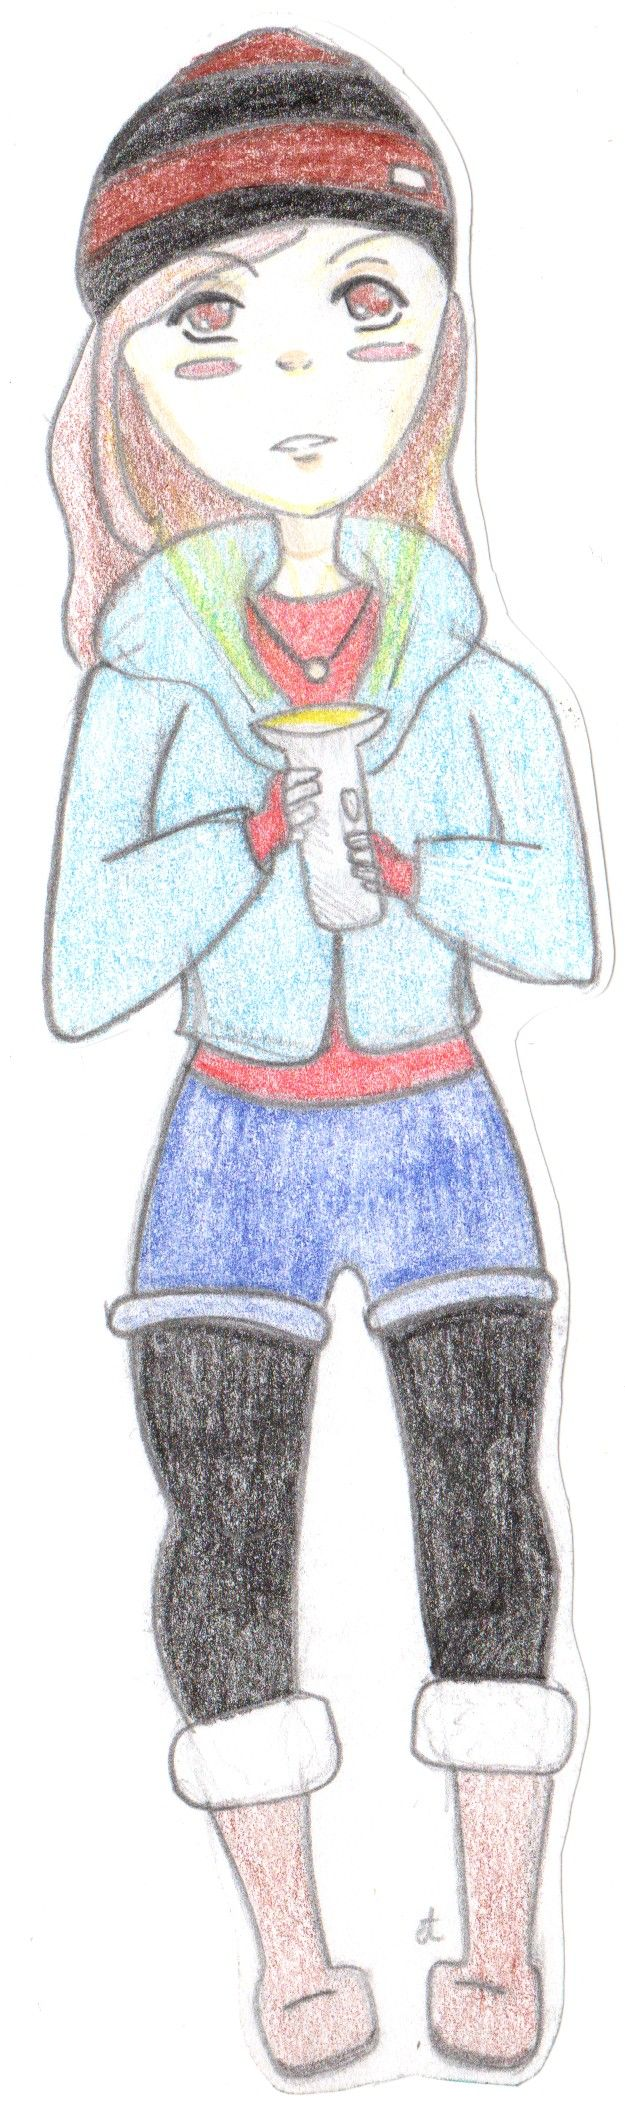 Ashley from Until Dawn~ this is my own drawing ^3^